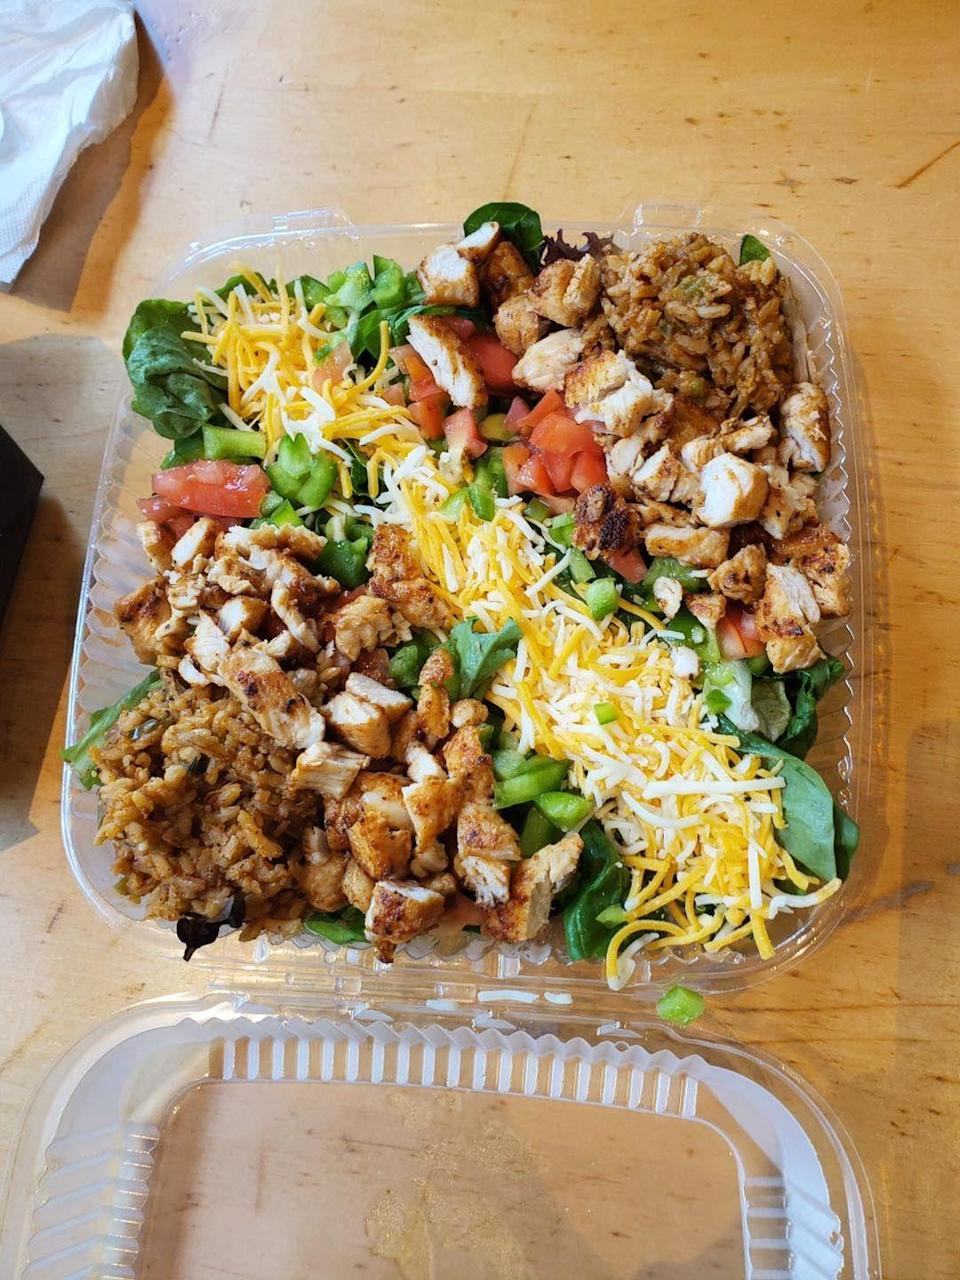 """<p><strong><a href=""""https://www.swampdaddyscajunkitchen.com/"""" rel=""""nofollow noopener"""" target=""""_blank"""" data-ylk=""""slk:Swamp Daddy's Cajun Kitchen"""" class=""""link rapid-noclick-resp"""">Swamp Daddy's Cajun Kitchen</a>, Sioux Falls</strong></p><p>This family-owned business was created by Louisiana natives who wanted to bring some Cajun flavor into South Dakota. You'll find real Southern food that will transport you to the New Orleans area. </p>"""